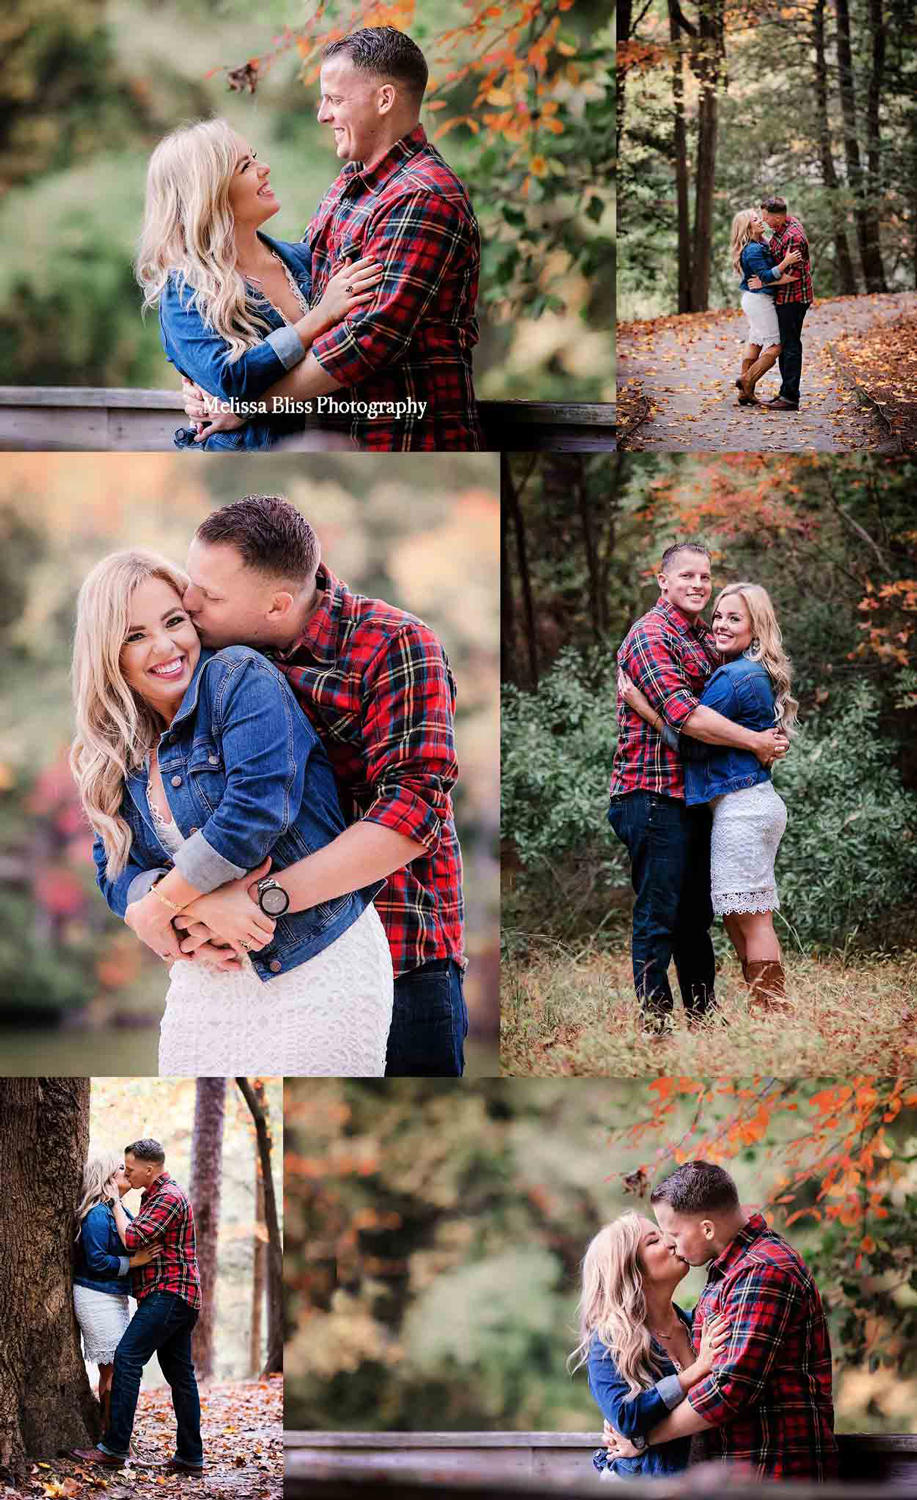 rustic-fall-couples-session-williamsburg-norfolk-virginia-beach-engagement-&-wedding-photographer-melissa-bliss-photography-.jpg